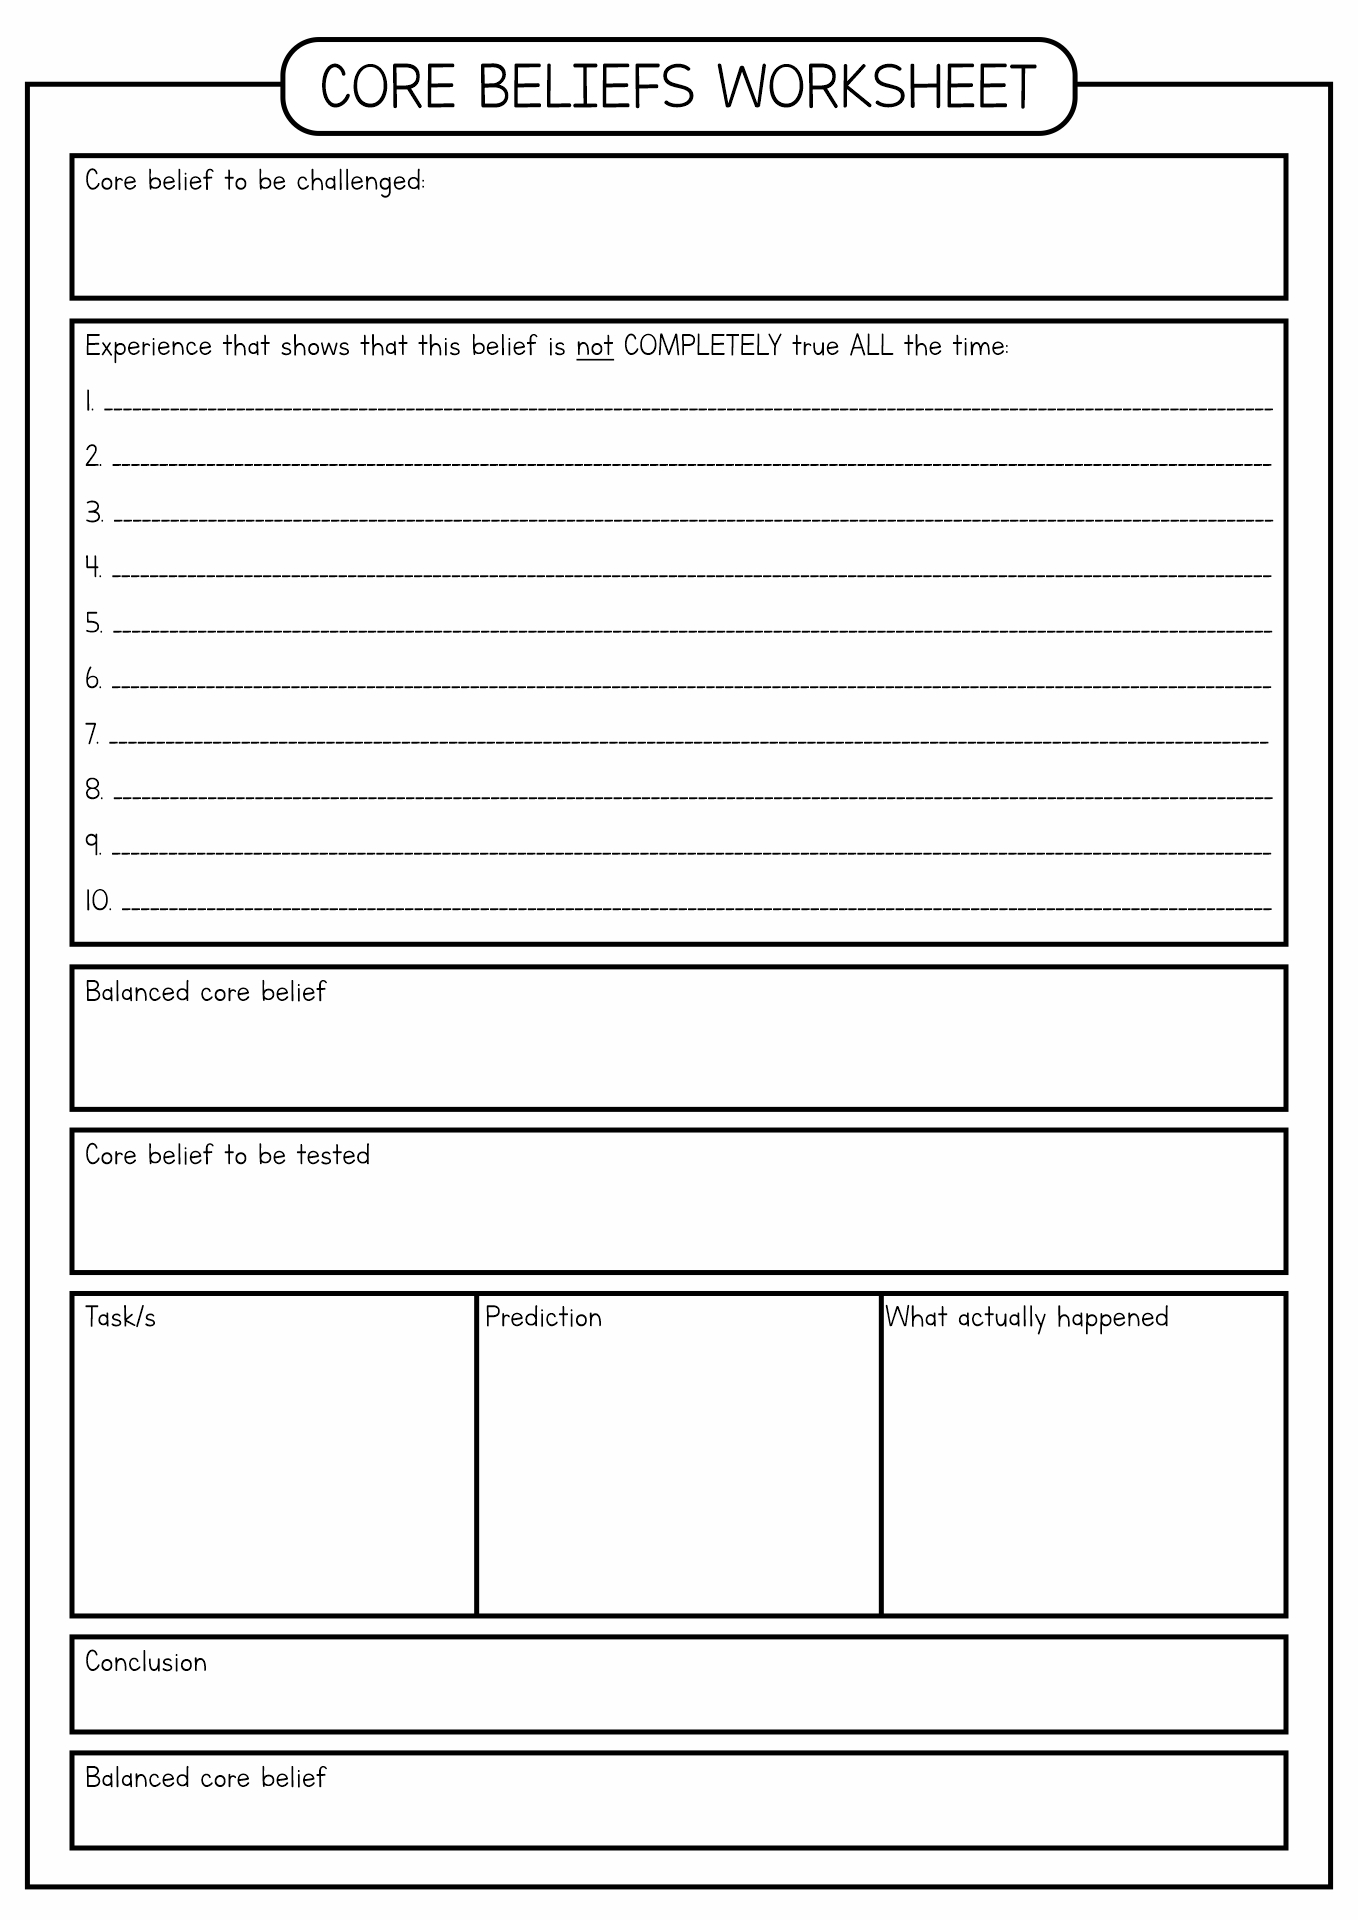 Changing Core Beliefs Worksheet